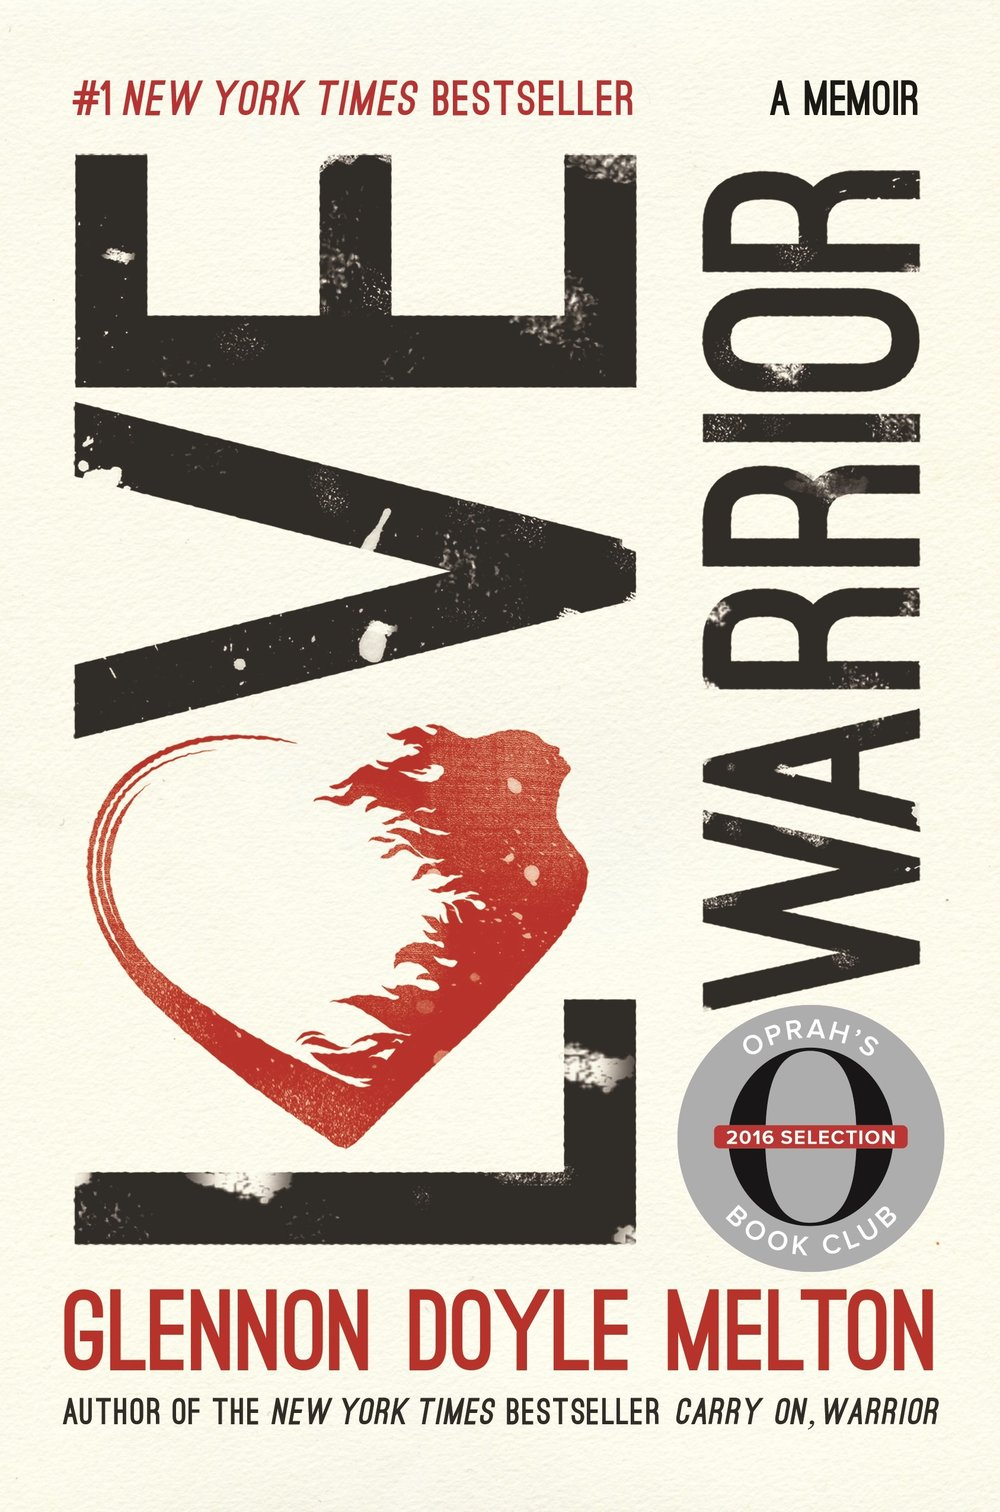 Love Warrior: A Memoir   by Glennon Doyle Melton